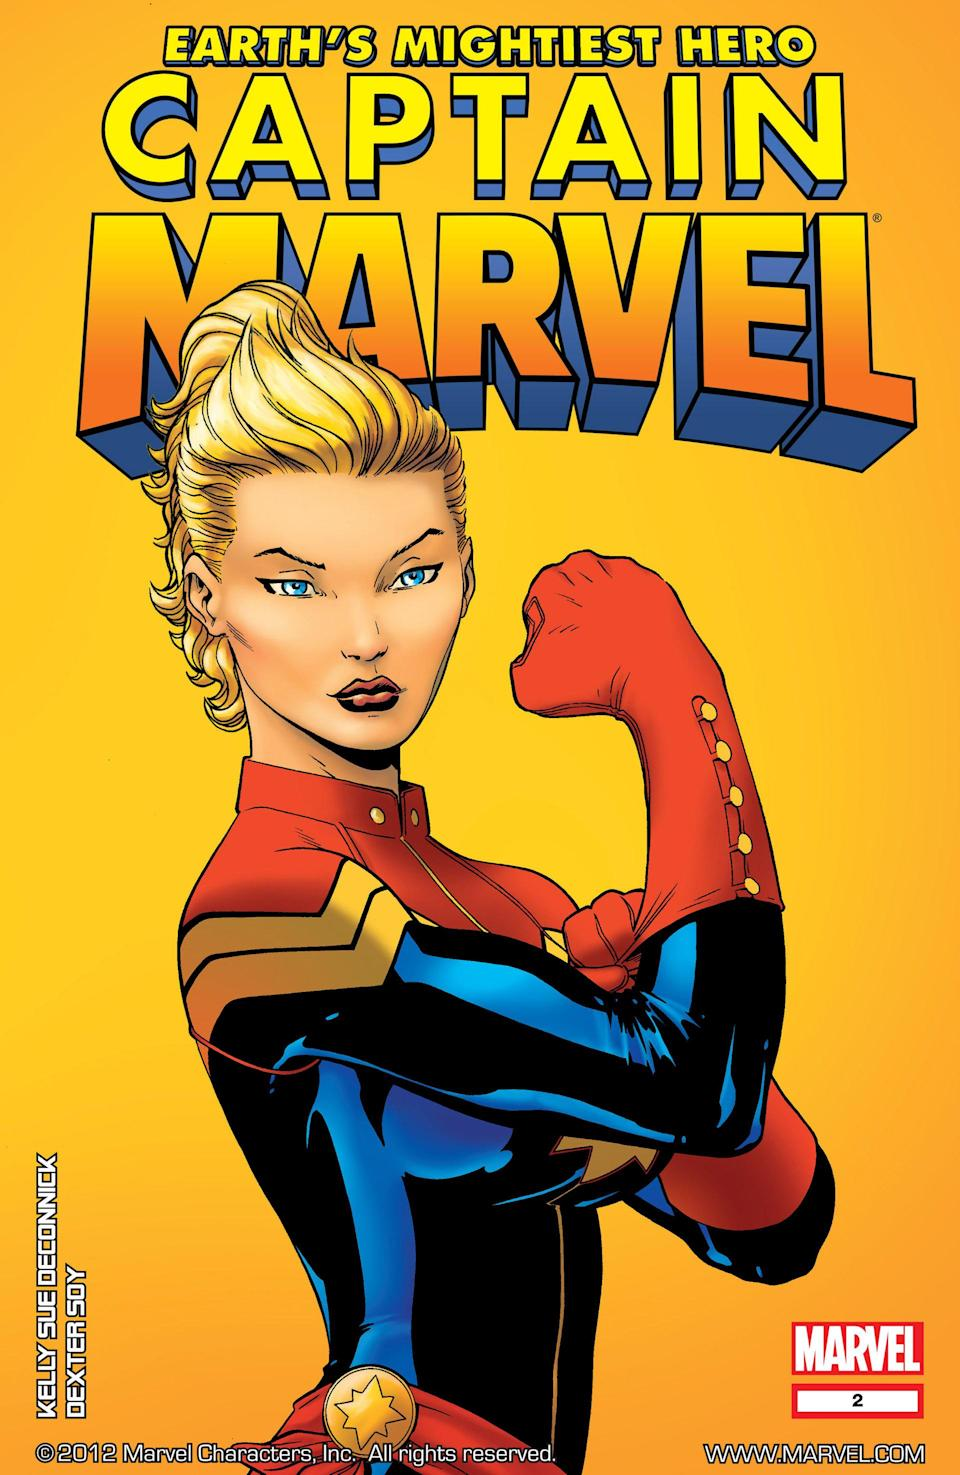 Carol Danvers made her debut as Captain Marvel in 2012. (Photo: Marvel)